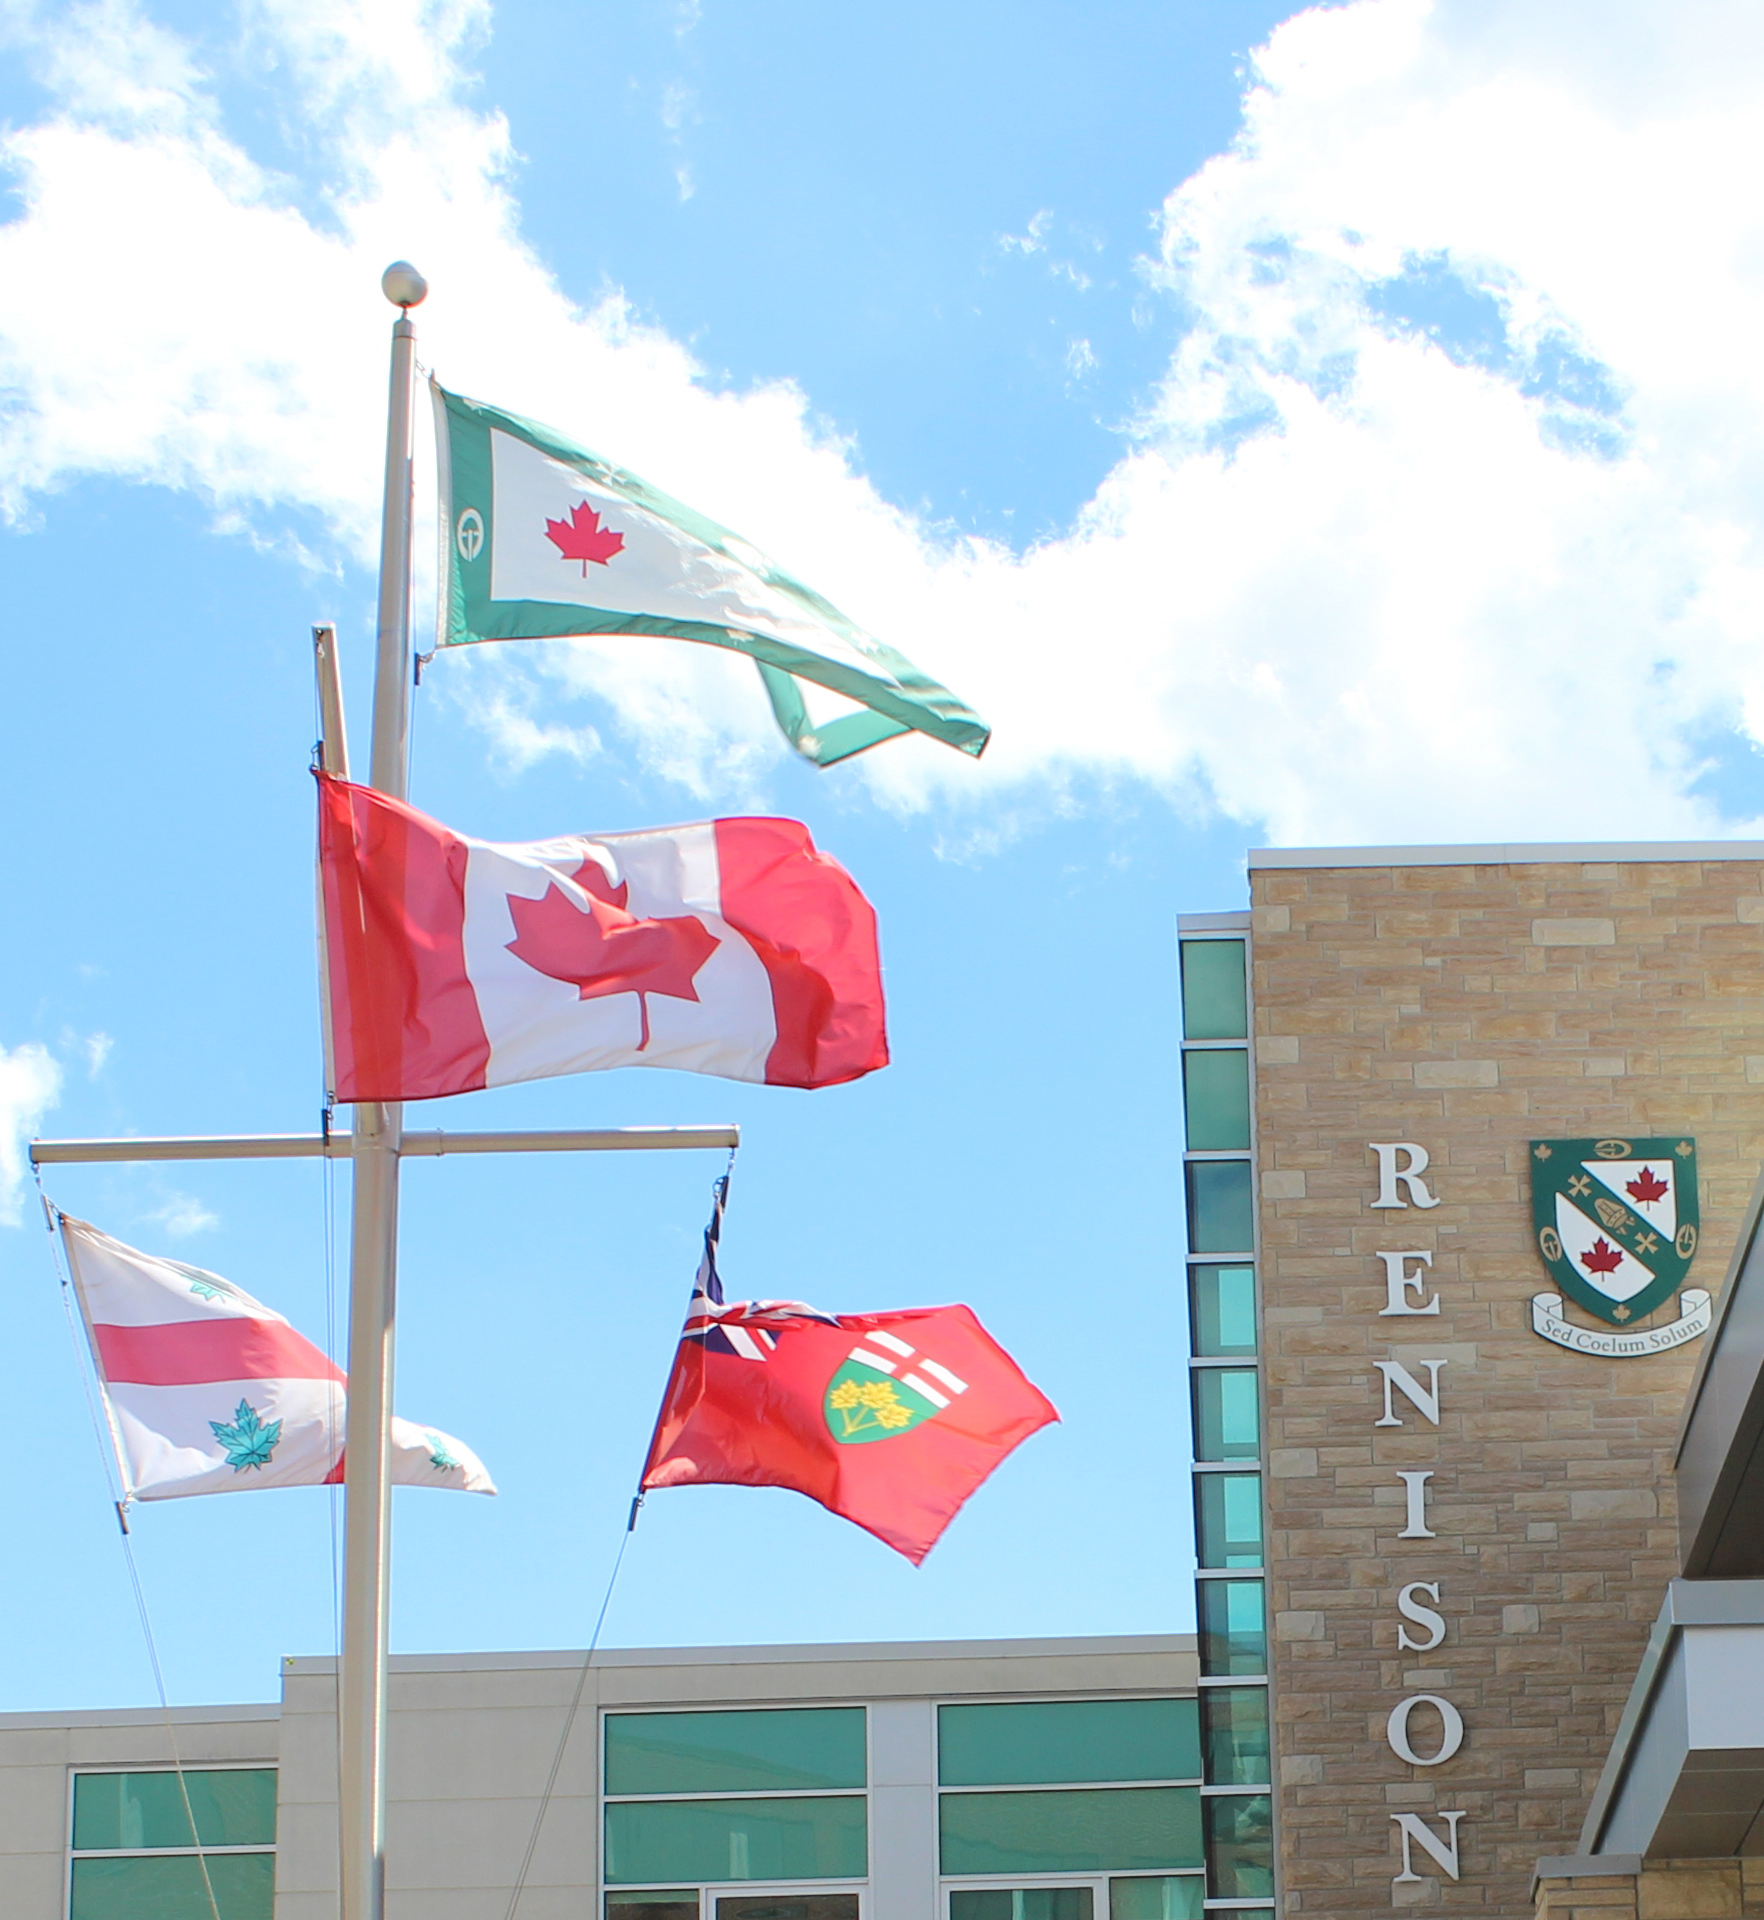 One sky over all - Renison skyline